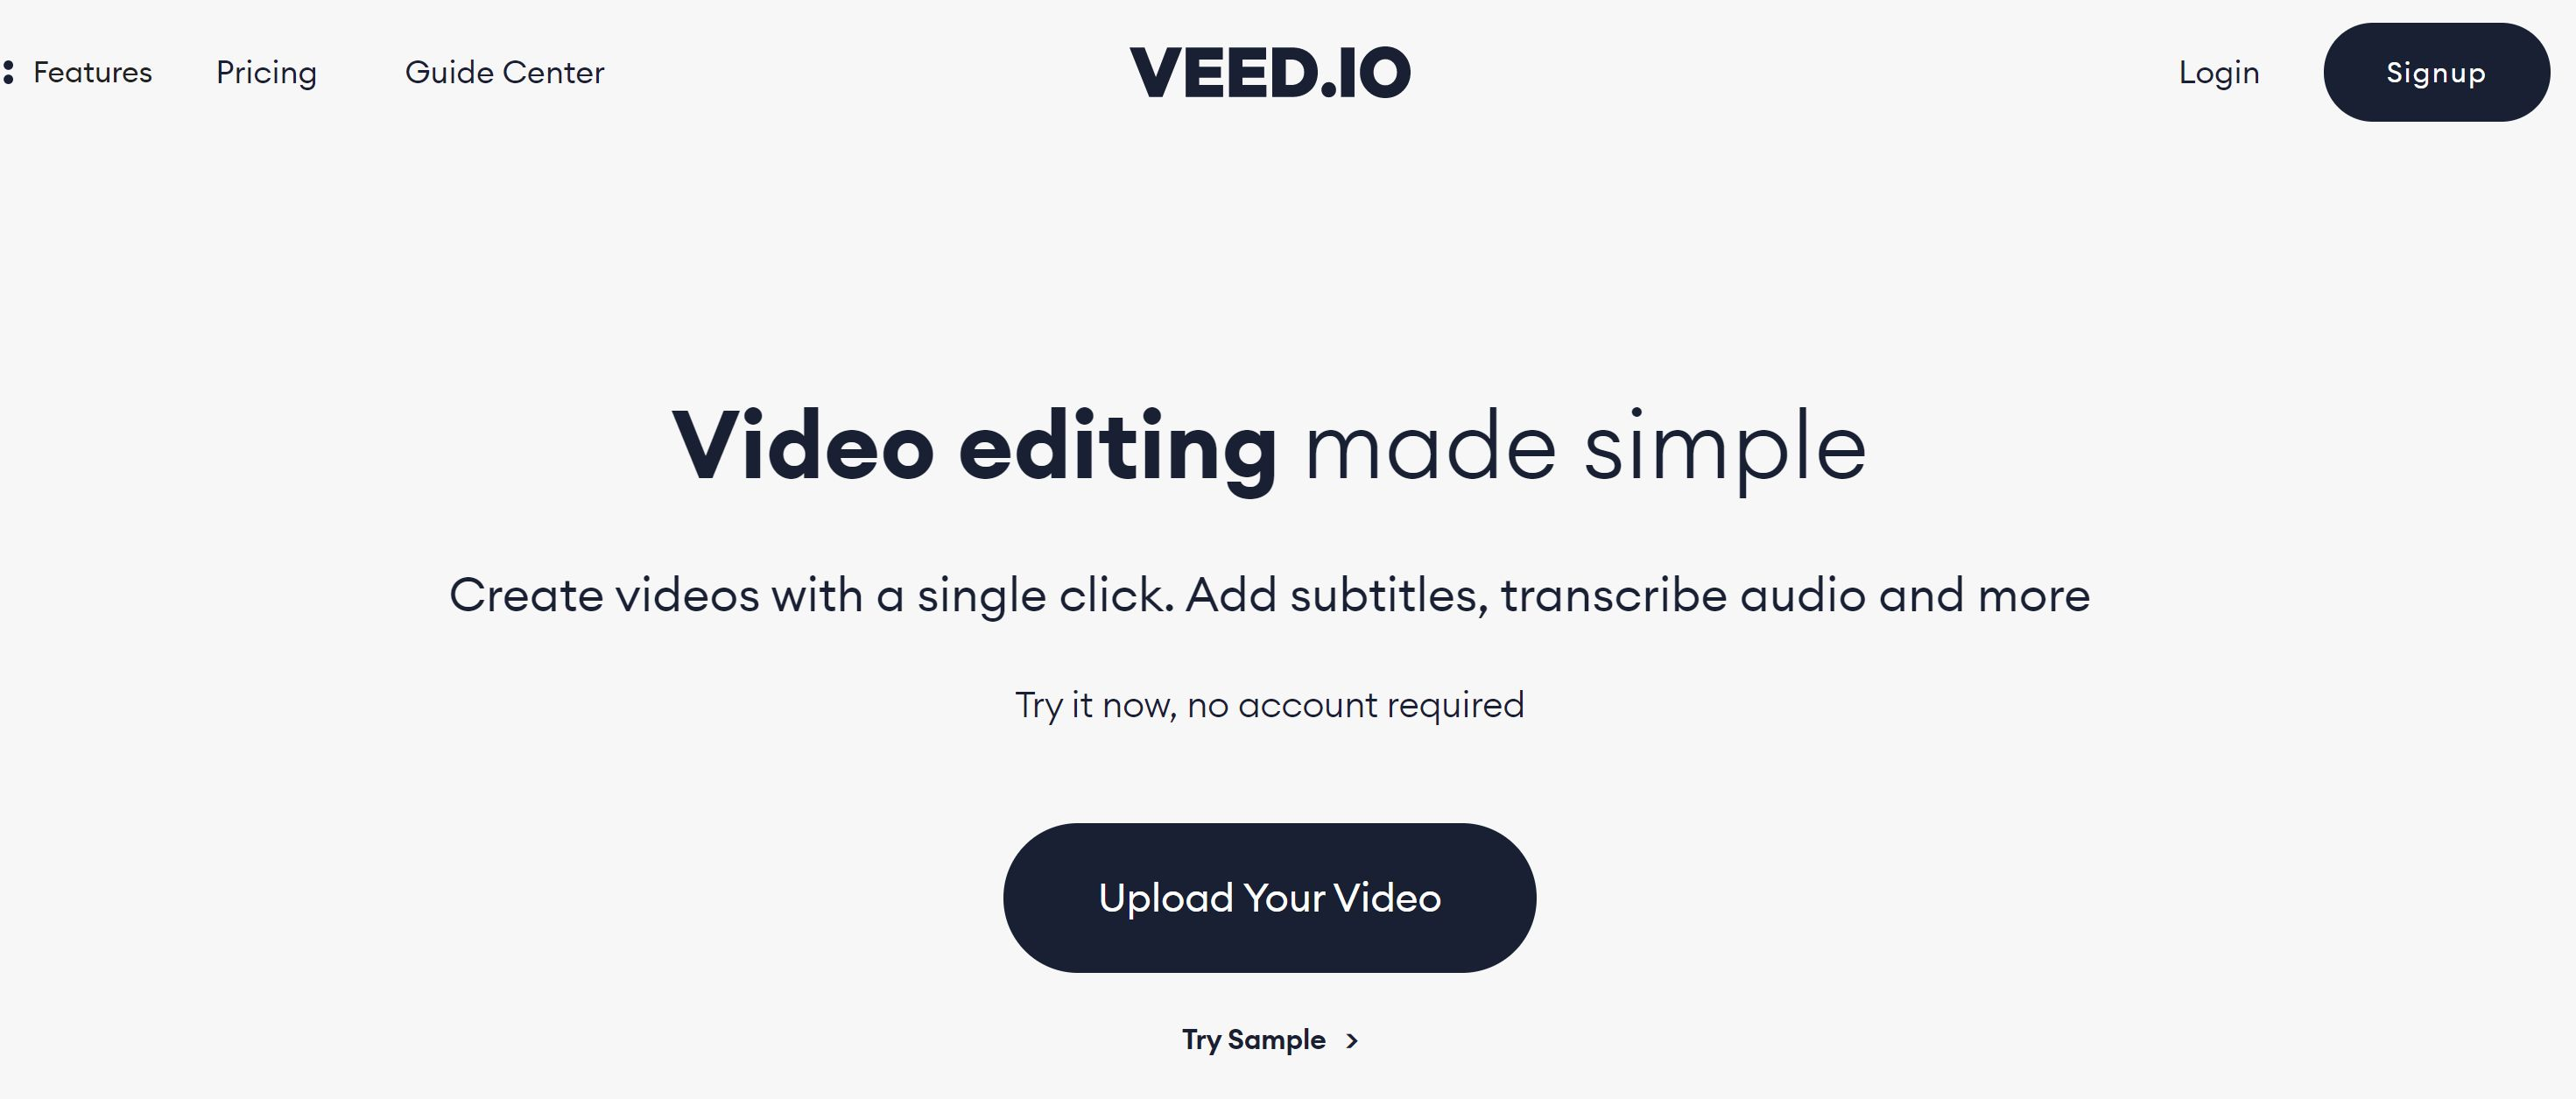 What is the Best Video Editing Software for Beginners?